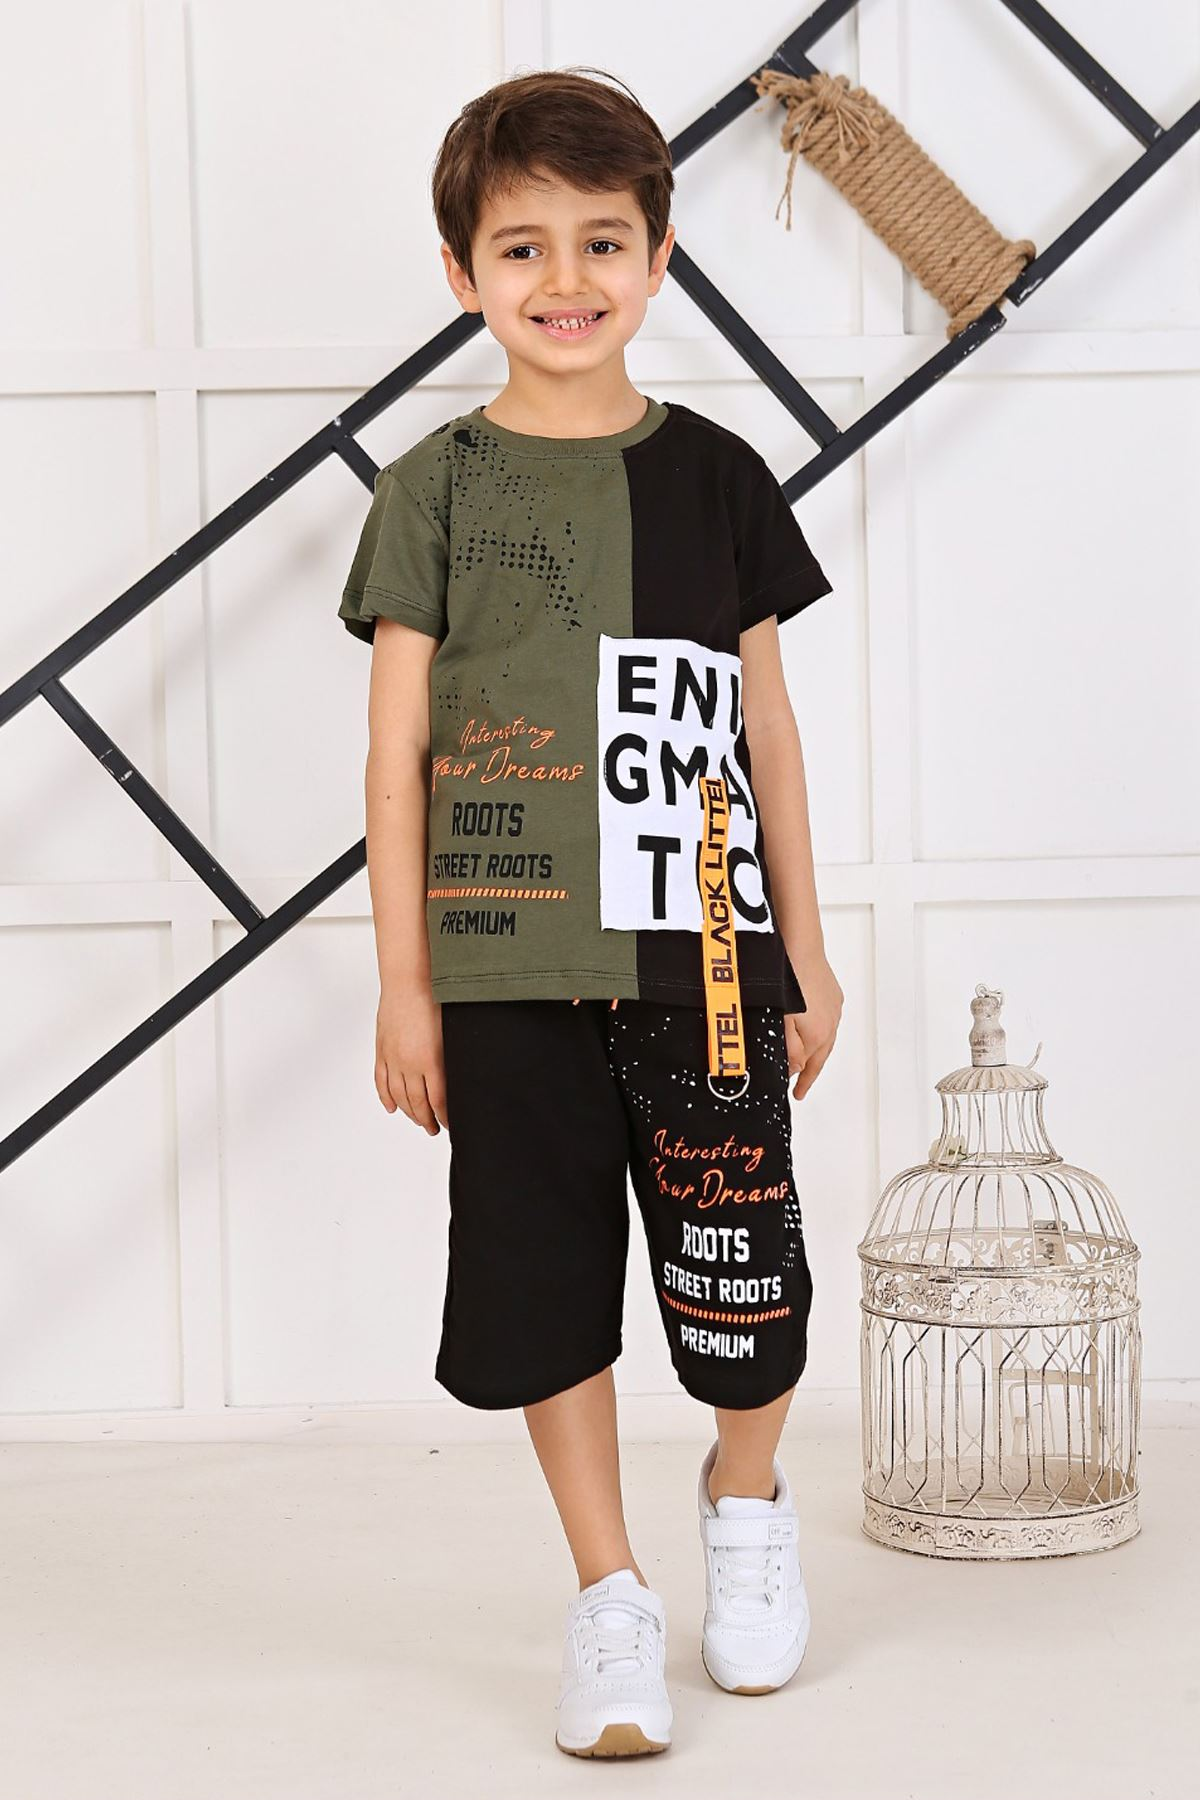 Military Green  Size Summer Shorts Set 2 Piece Clothes Shorts T-shirt Casual Casual Holiday Children Boys Cool Cotton Outfits kid Clothing